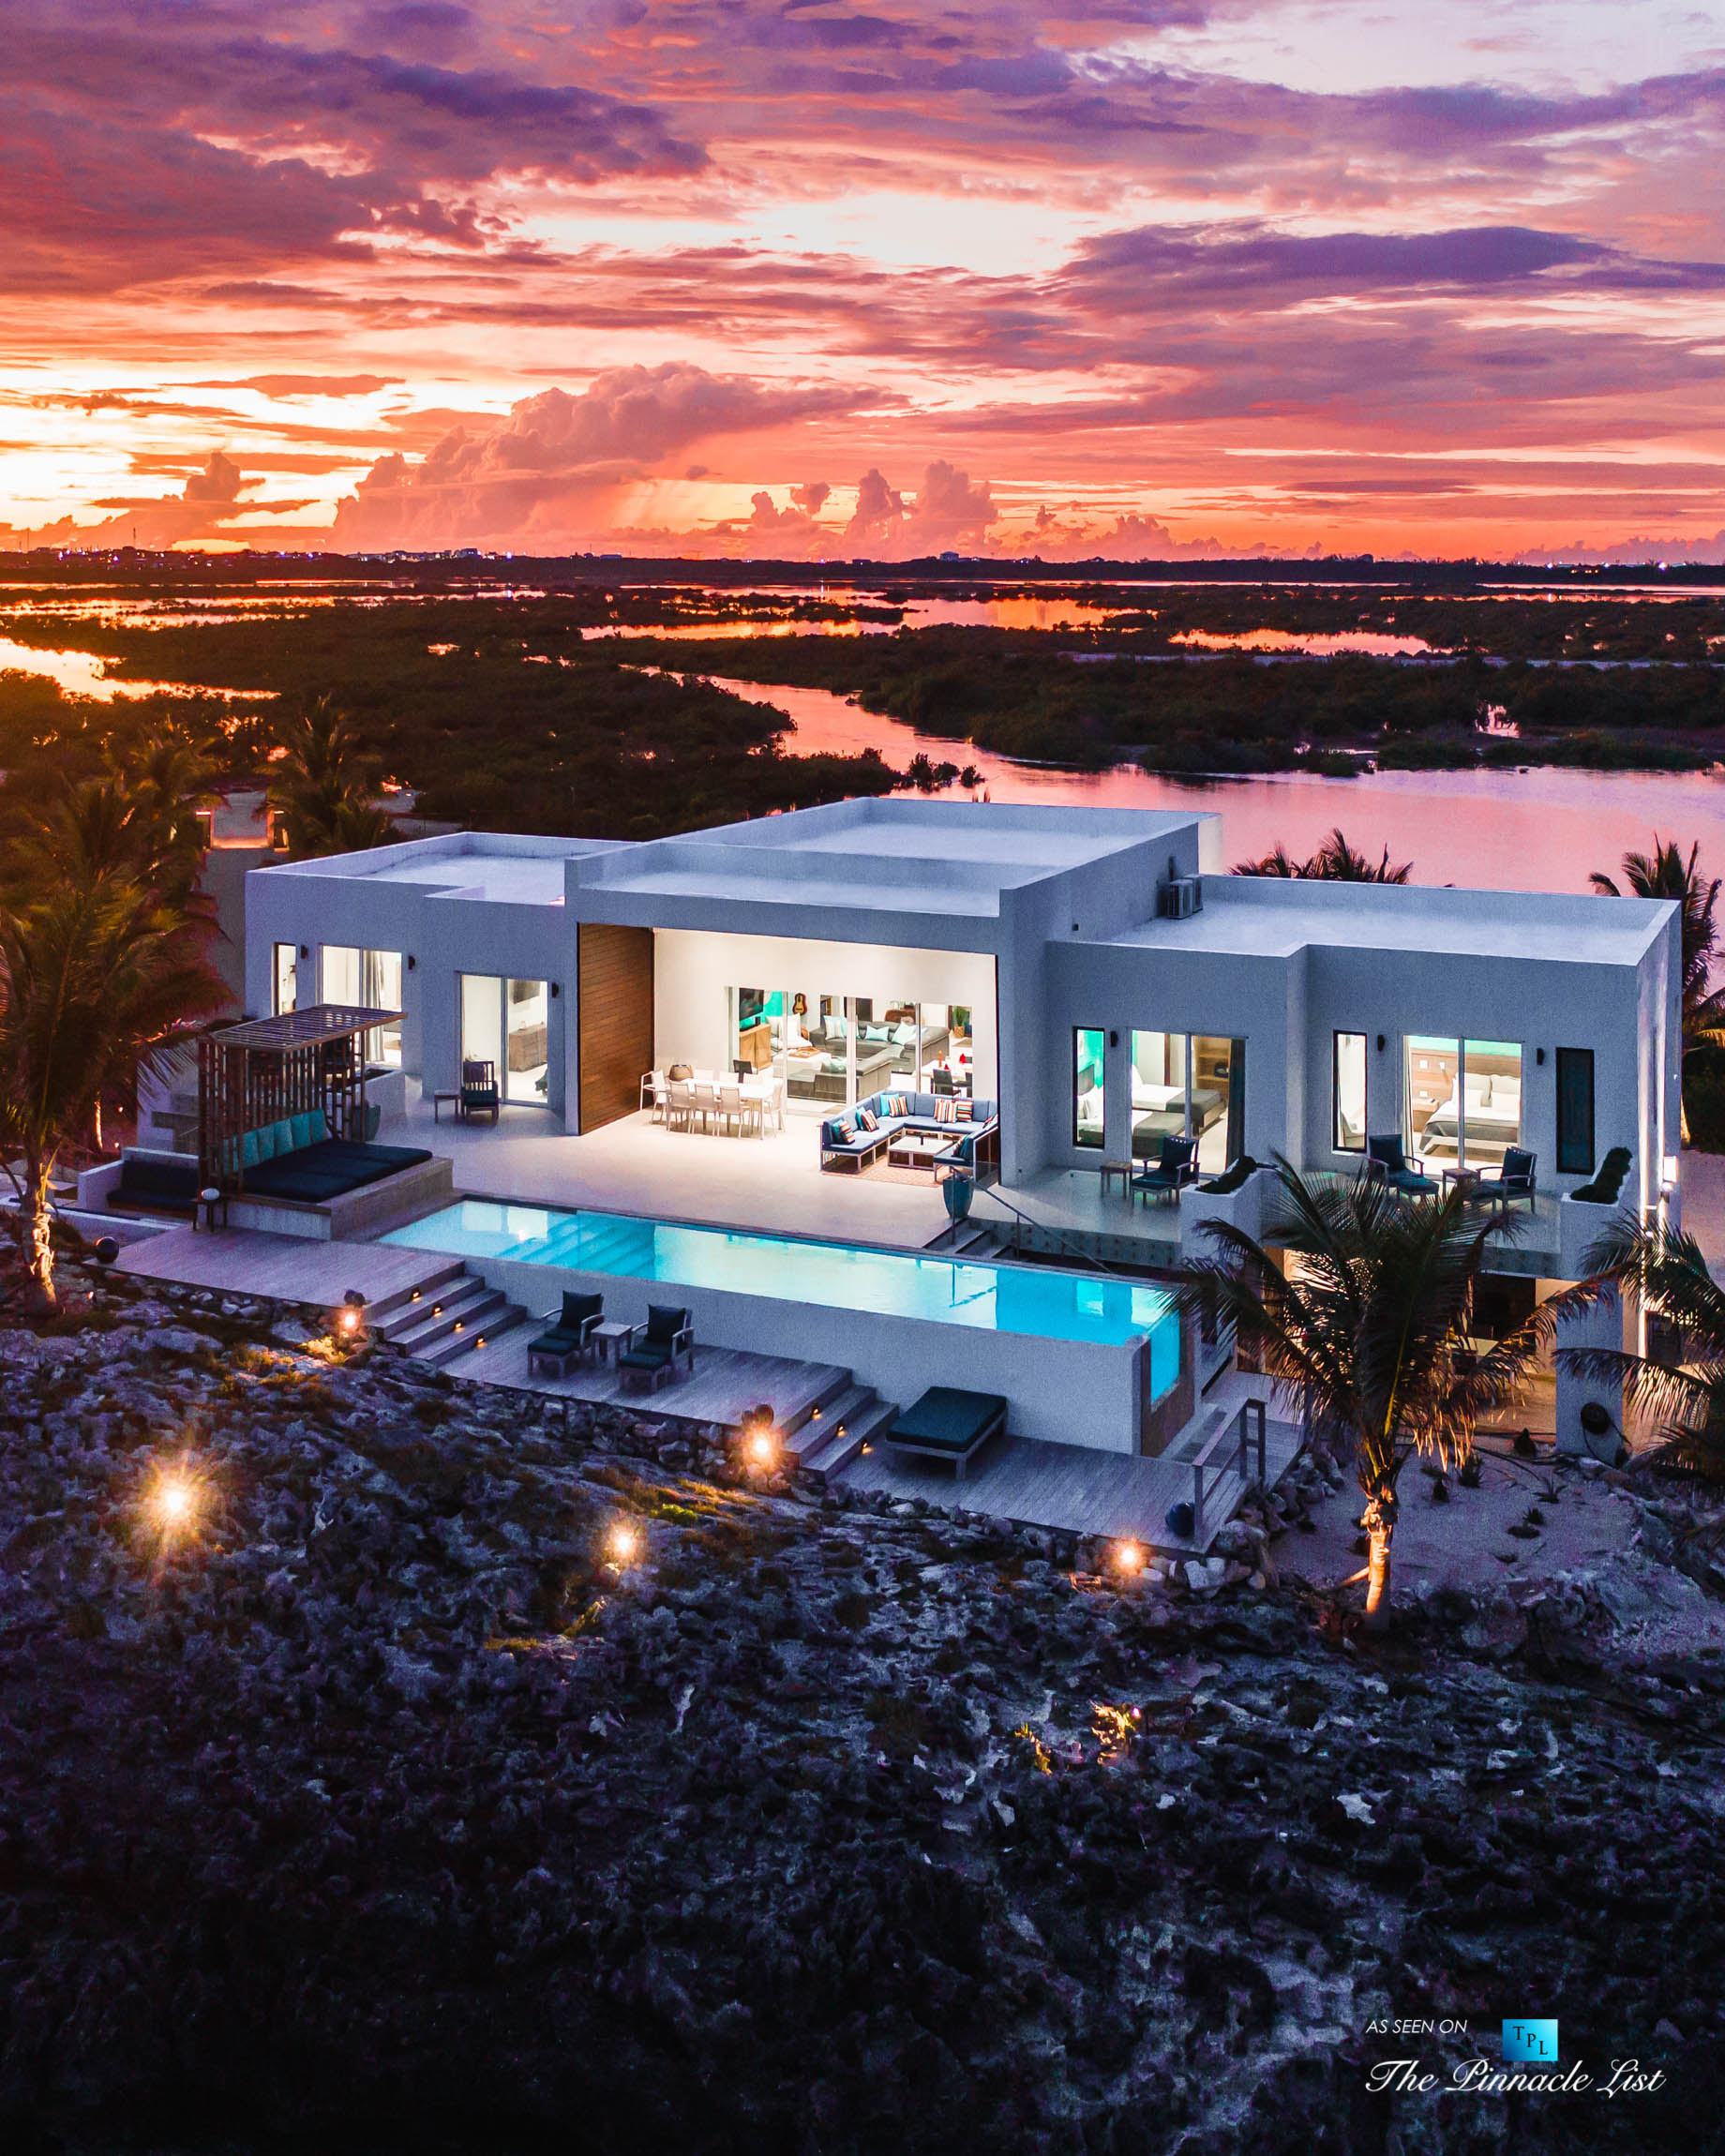 Tip of the Tail Villa – Providenciales, Turks and Caicos Islands – Caribbean Villa Oceanfront Sunset View – Luxury Real Estate – South Shore Peninsula Home